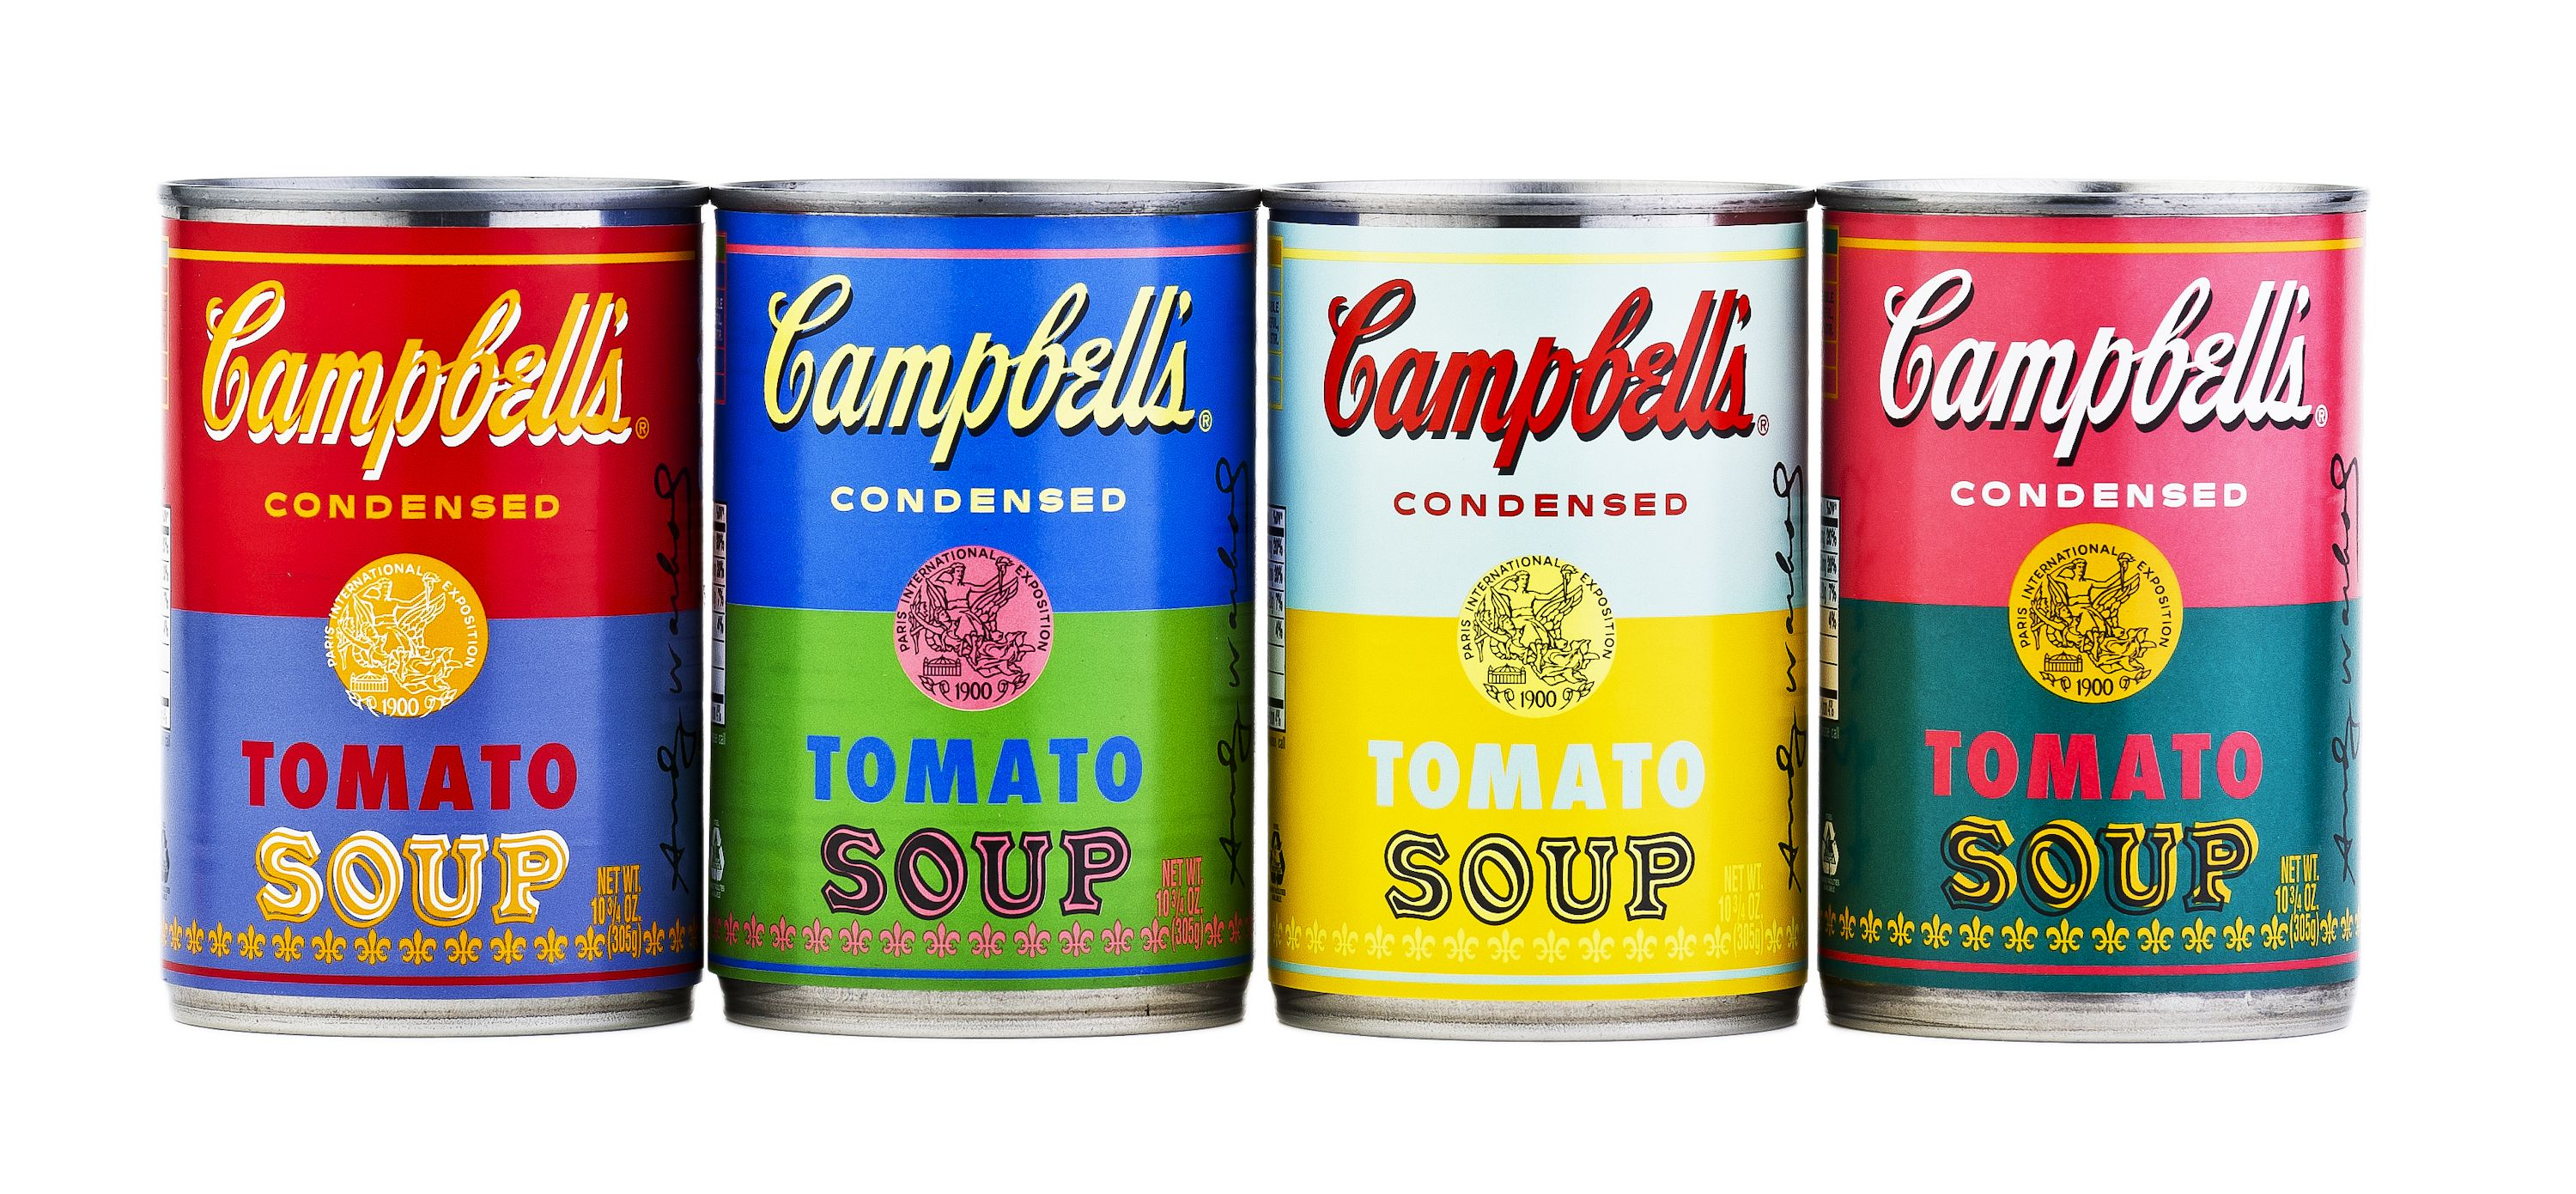 Campbells Soup Limited Edition Cans Andy Warhol Soup Cans Campbell Soup Campbell S Soup Cans